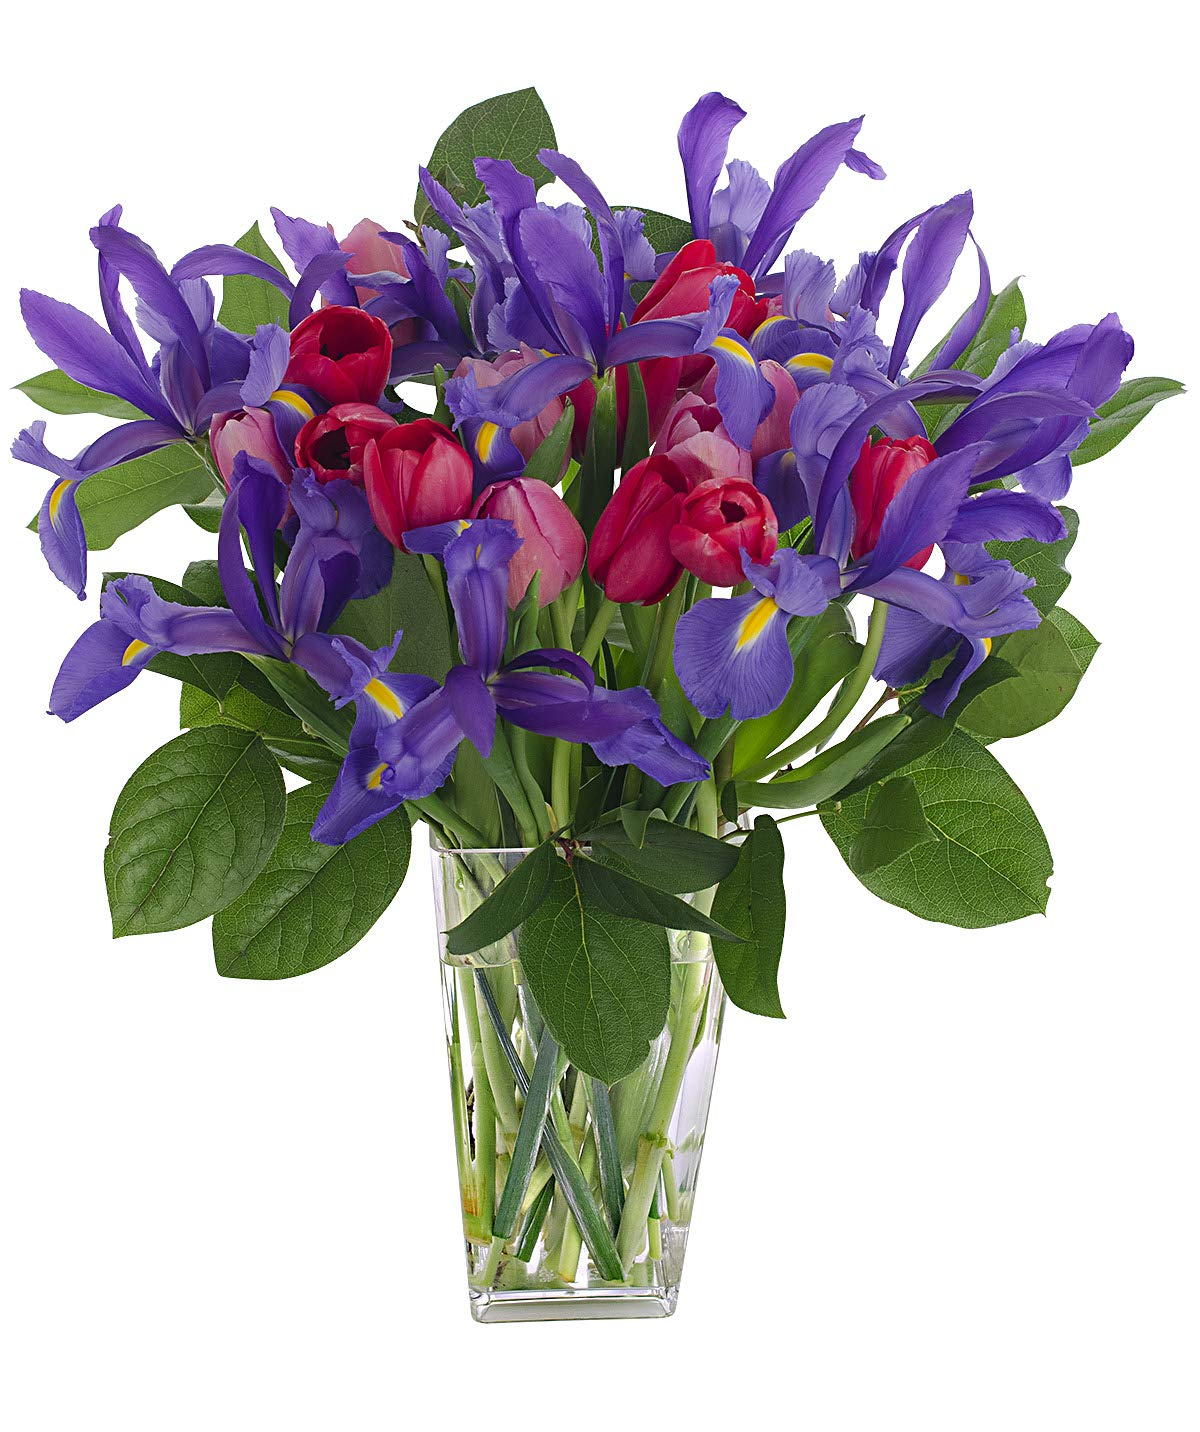 Stargazer Barn Big Hug Bouquet 26 Stems of Tulips and Telstar Iris with Clear Vase